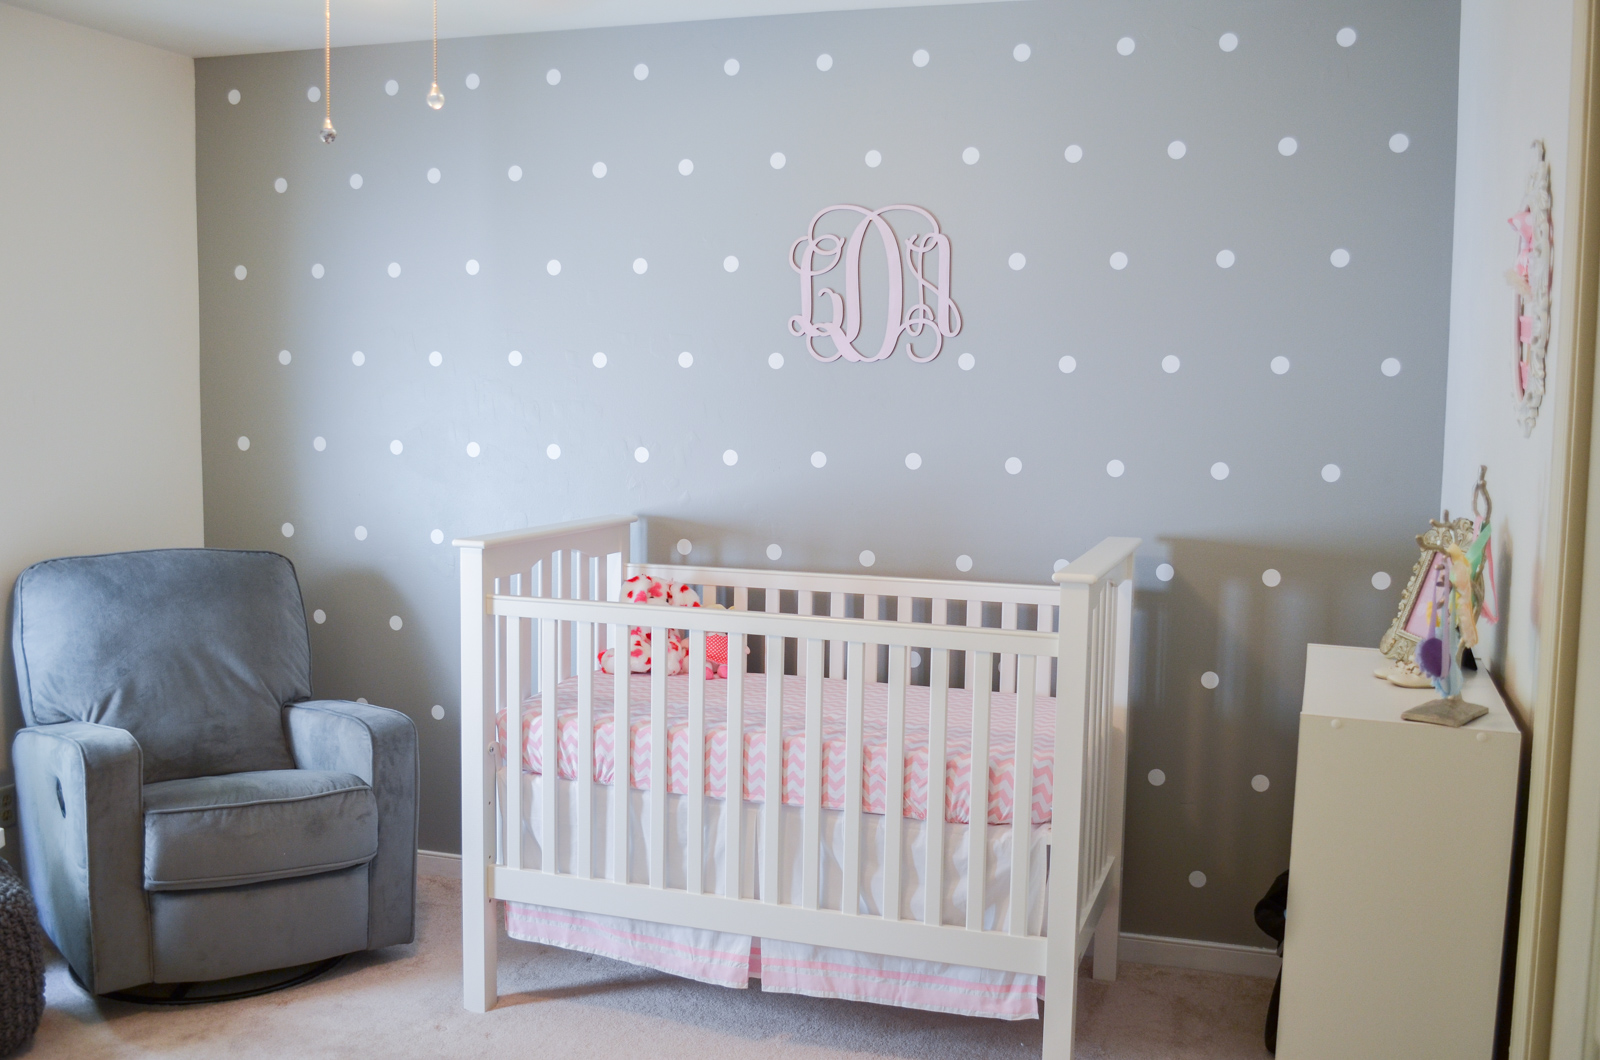 Superb polka dot nursery wall polka dot accent wall instuctions bylaurenm